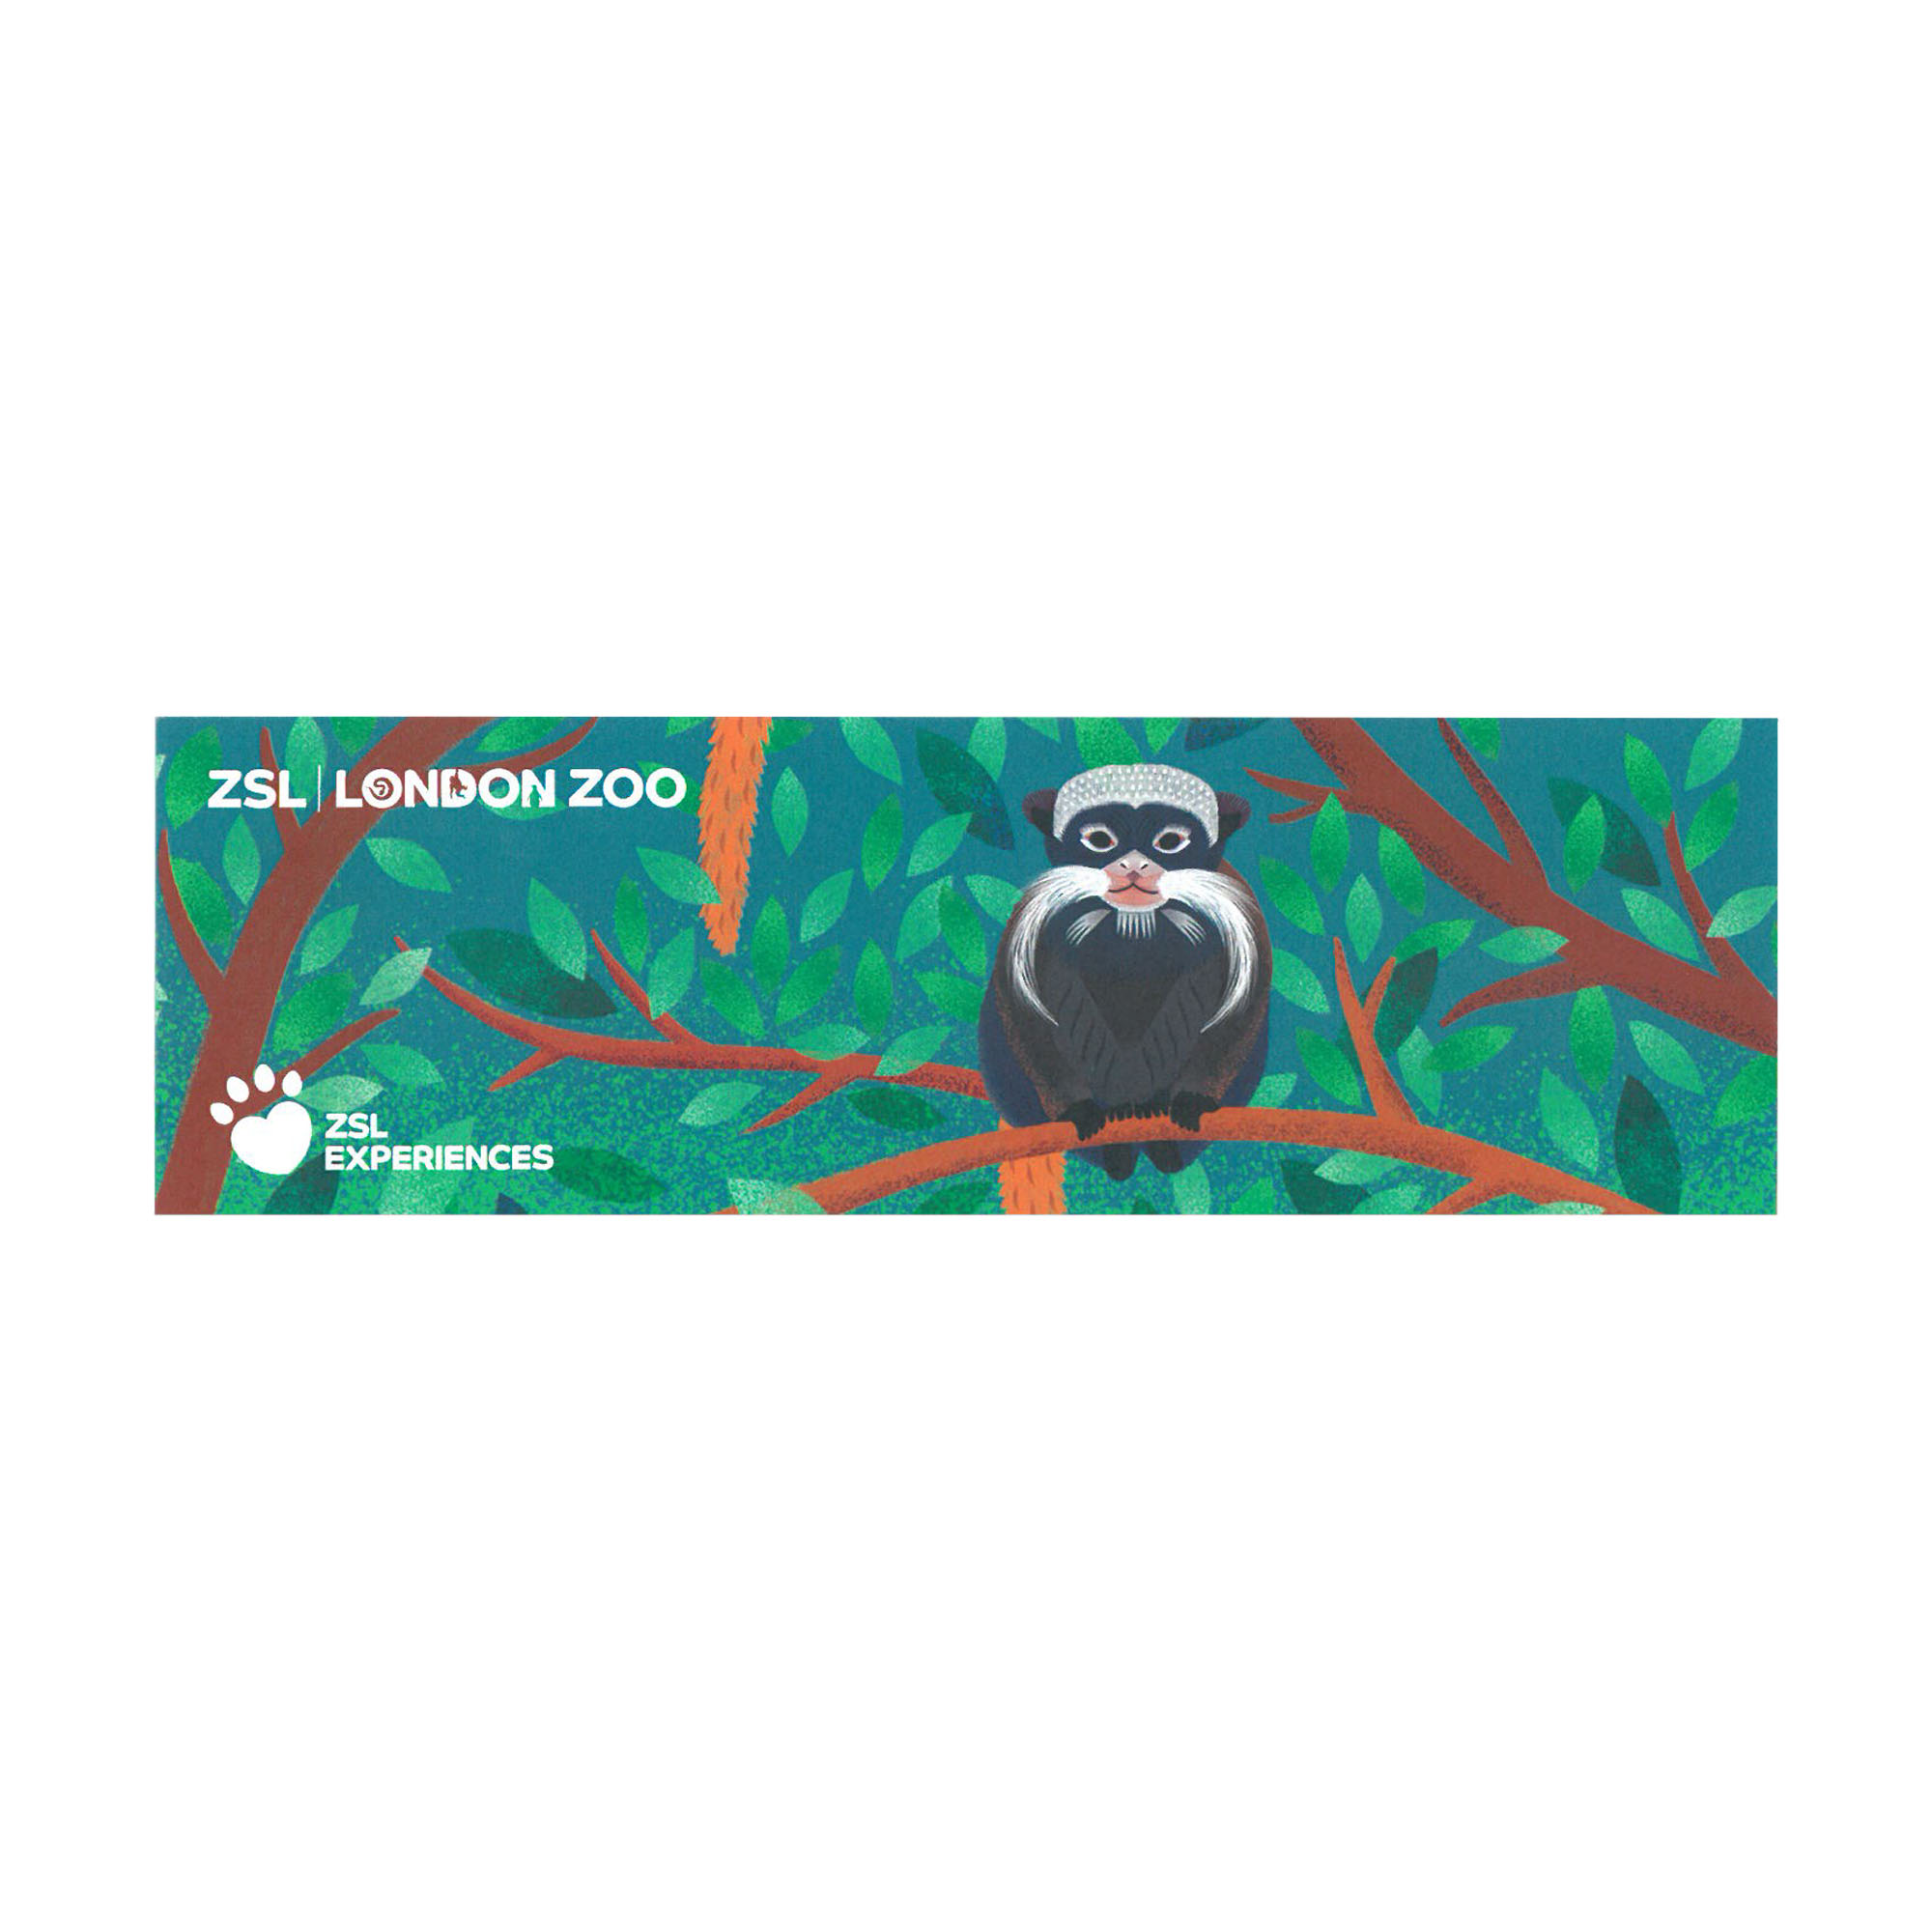 Meet the Rainforest Gift Experience at ZSL London Zoo